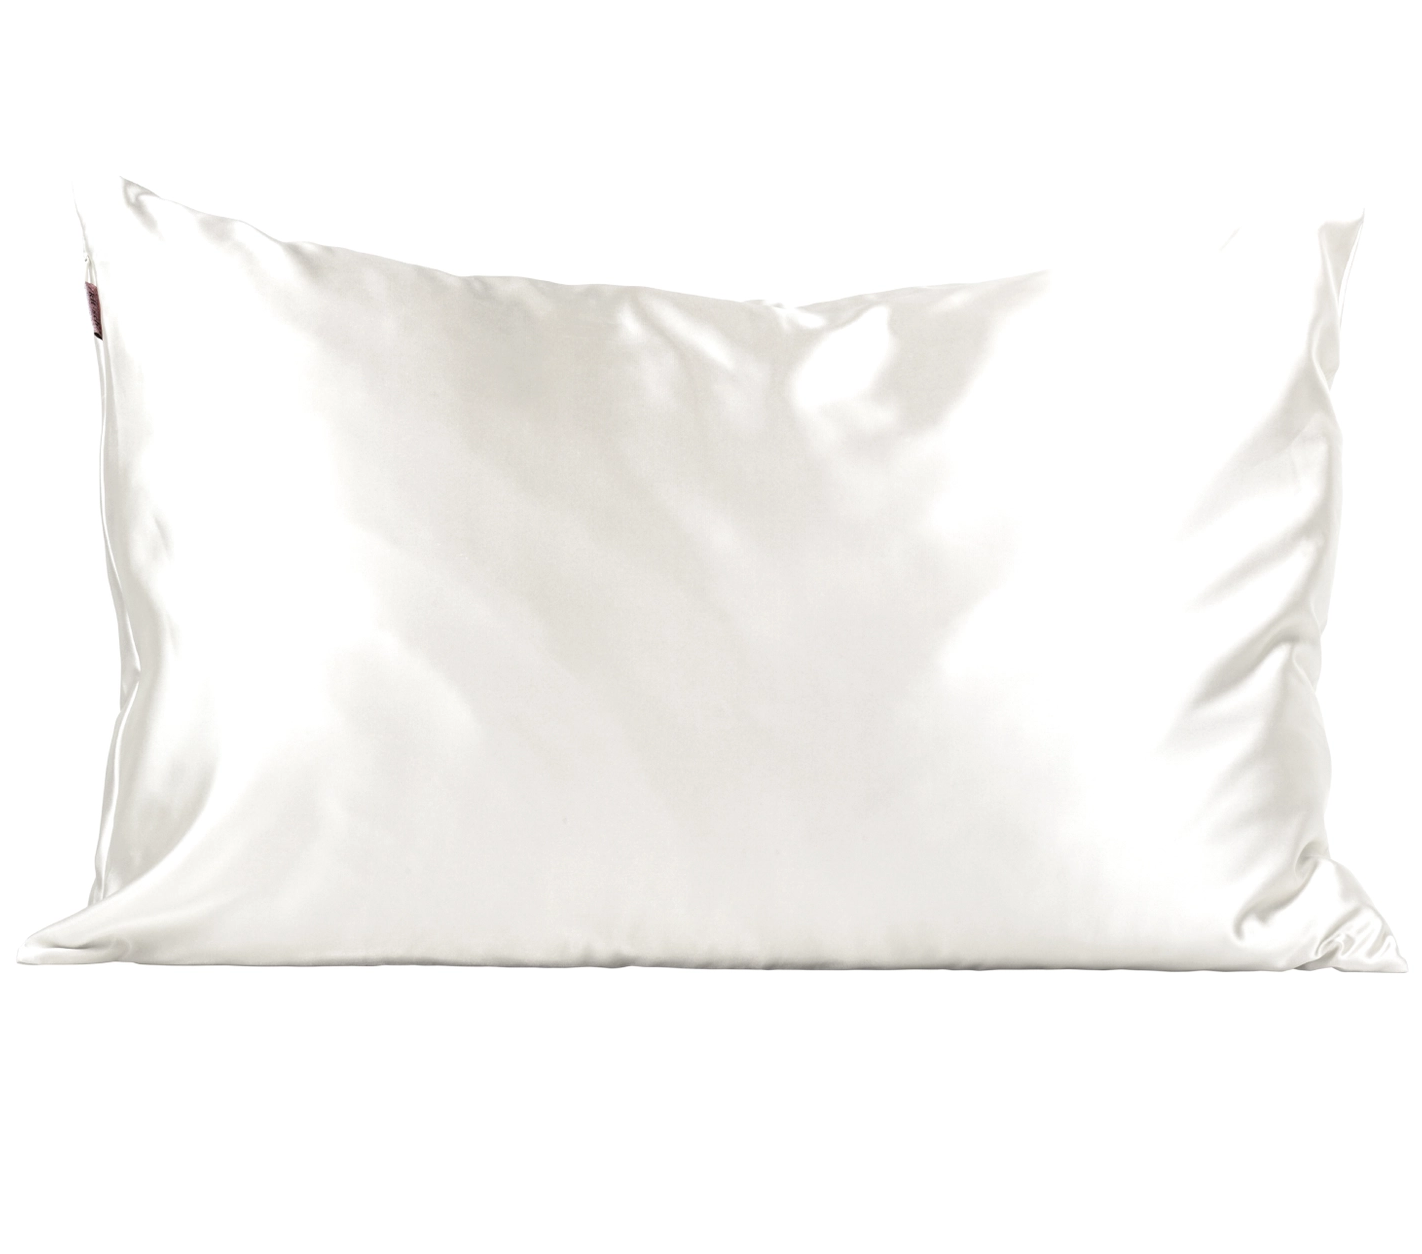 Kitsch Satin Pillowcase - Ivory